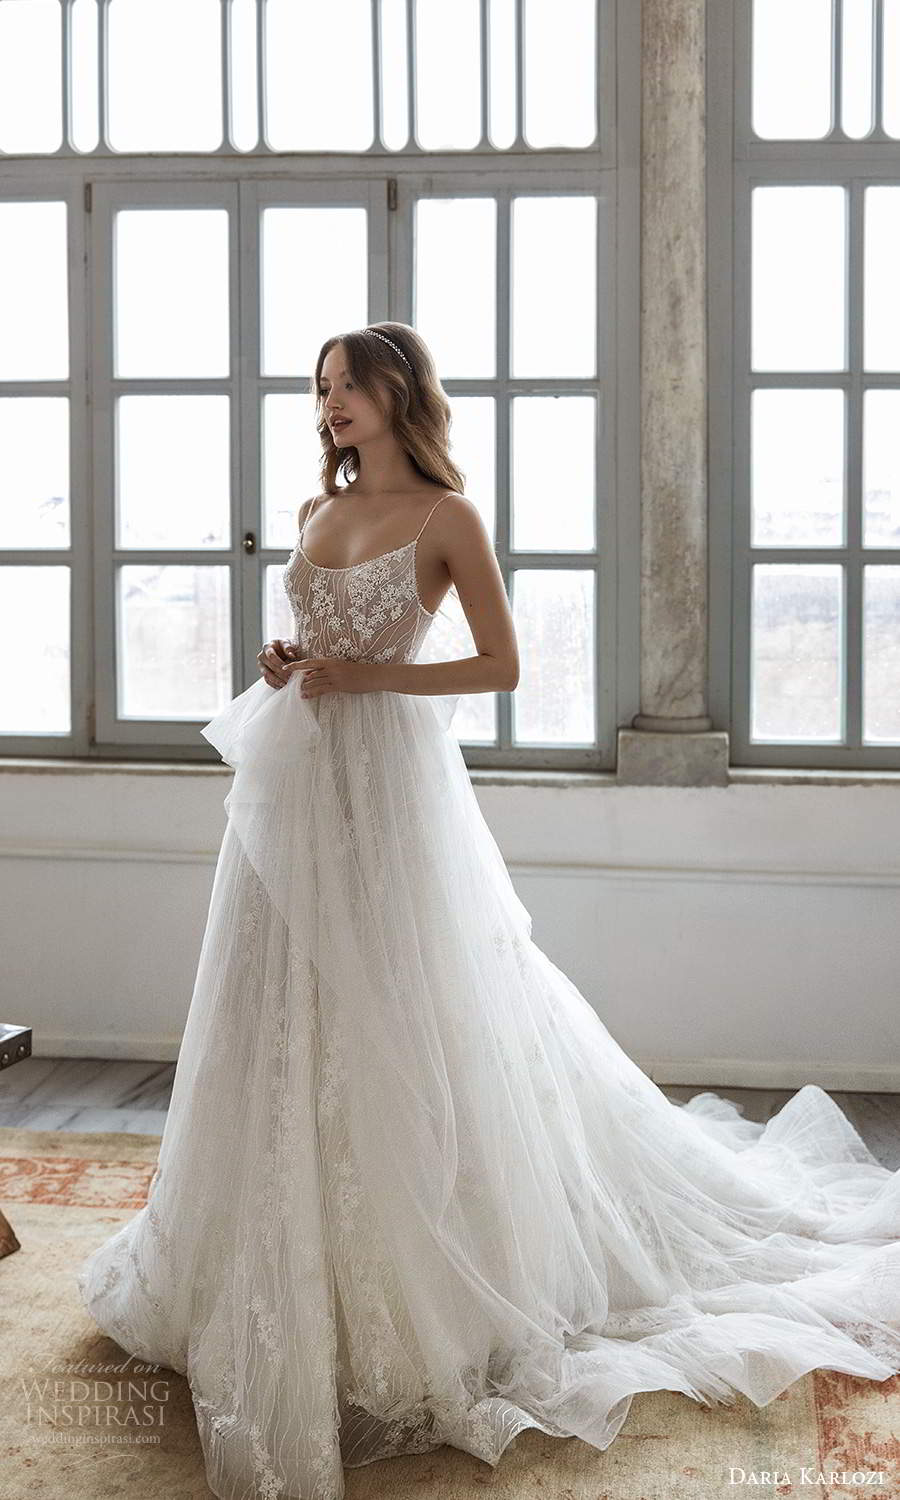 daria karlozi 2021 bridal sleeveless thin straps scoop neck embellished bodice a line ball gown wedding dress ruffle skirt chapel train (9) mv